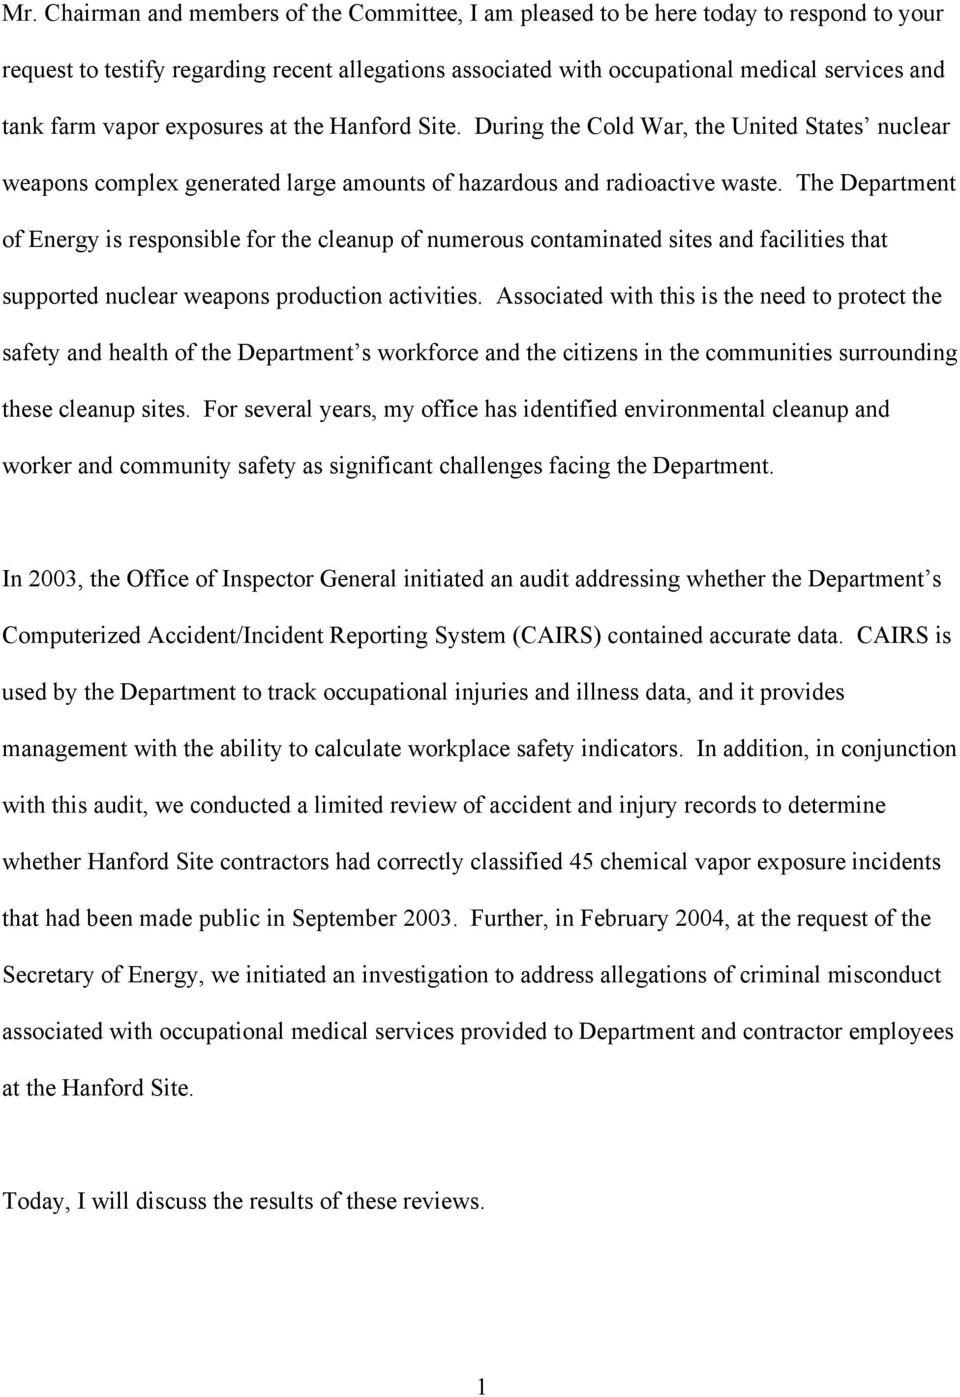 The Department of Energy is responsible for the cleanup of numerous contaminated sites and facilities that supported nuclear weapons production activities.